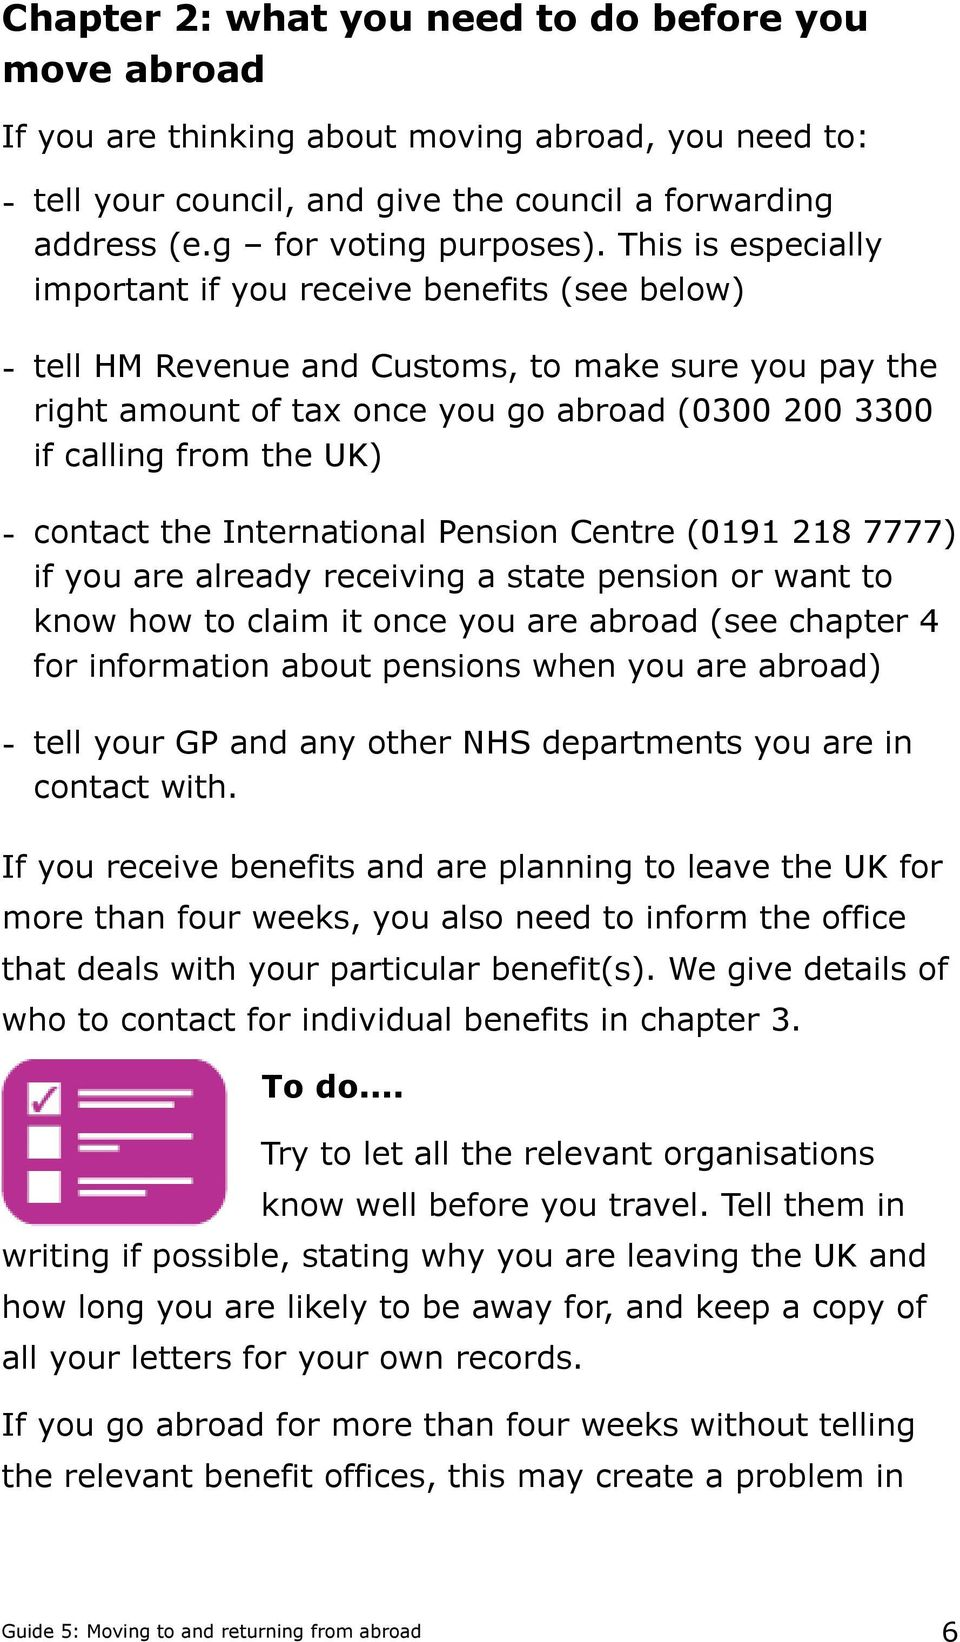 - contact the International Pension Centre (0191 218 7777) if you are already receiving a state pension or want to know how to claim it once you are abroad (see chapter 4 for information about